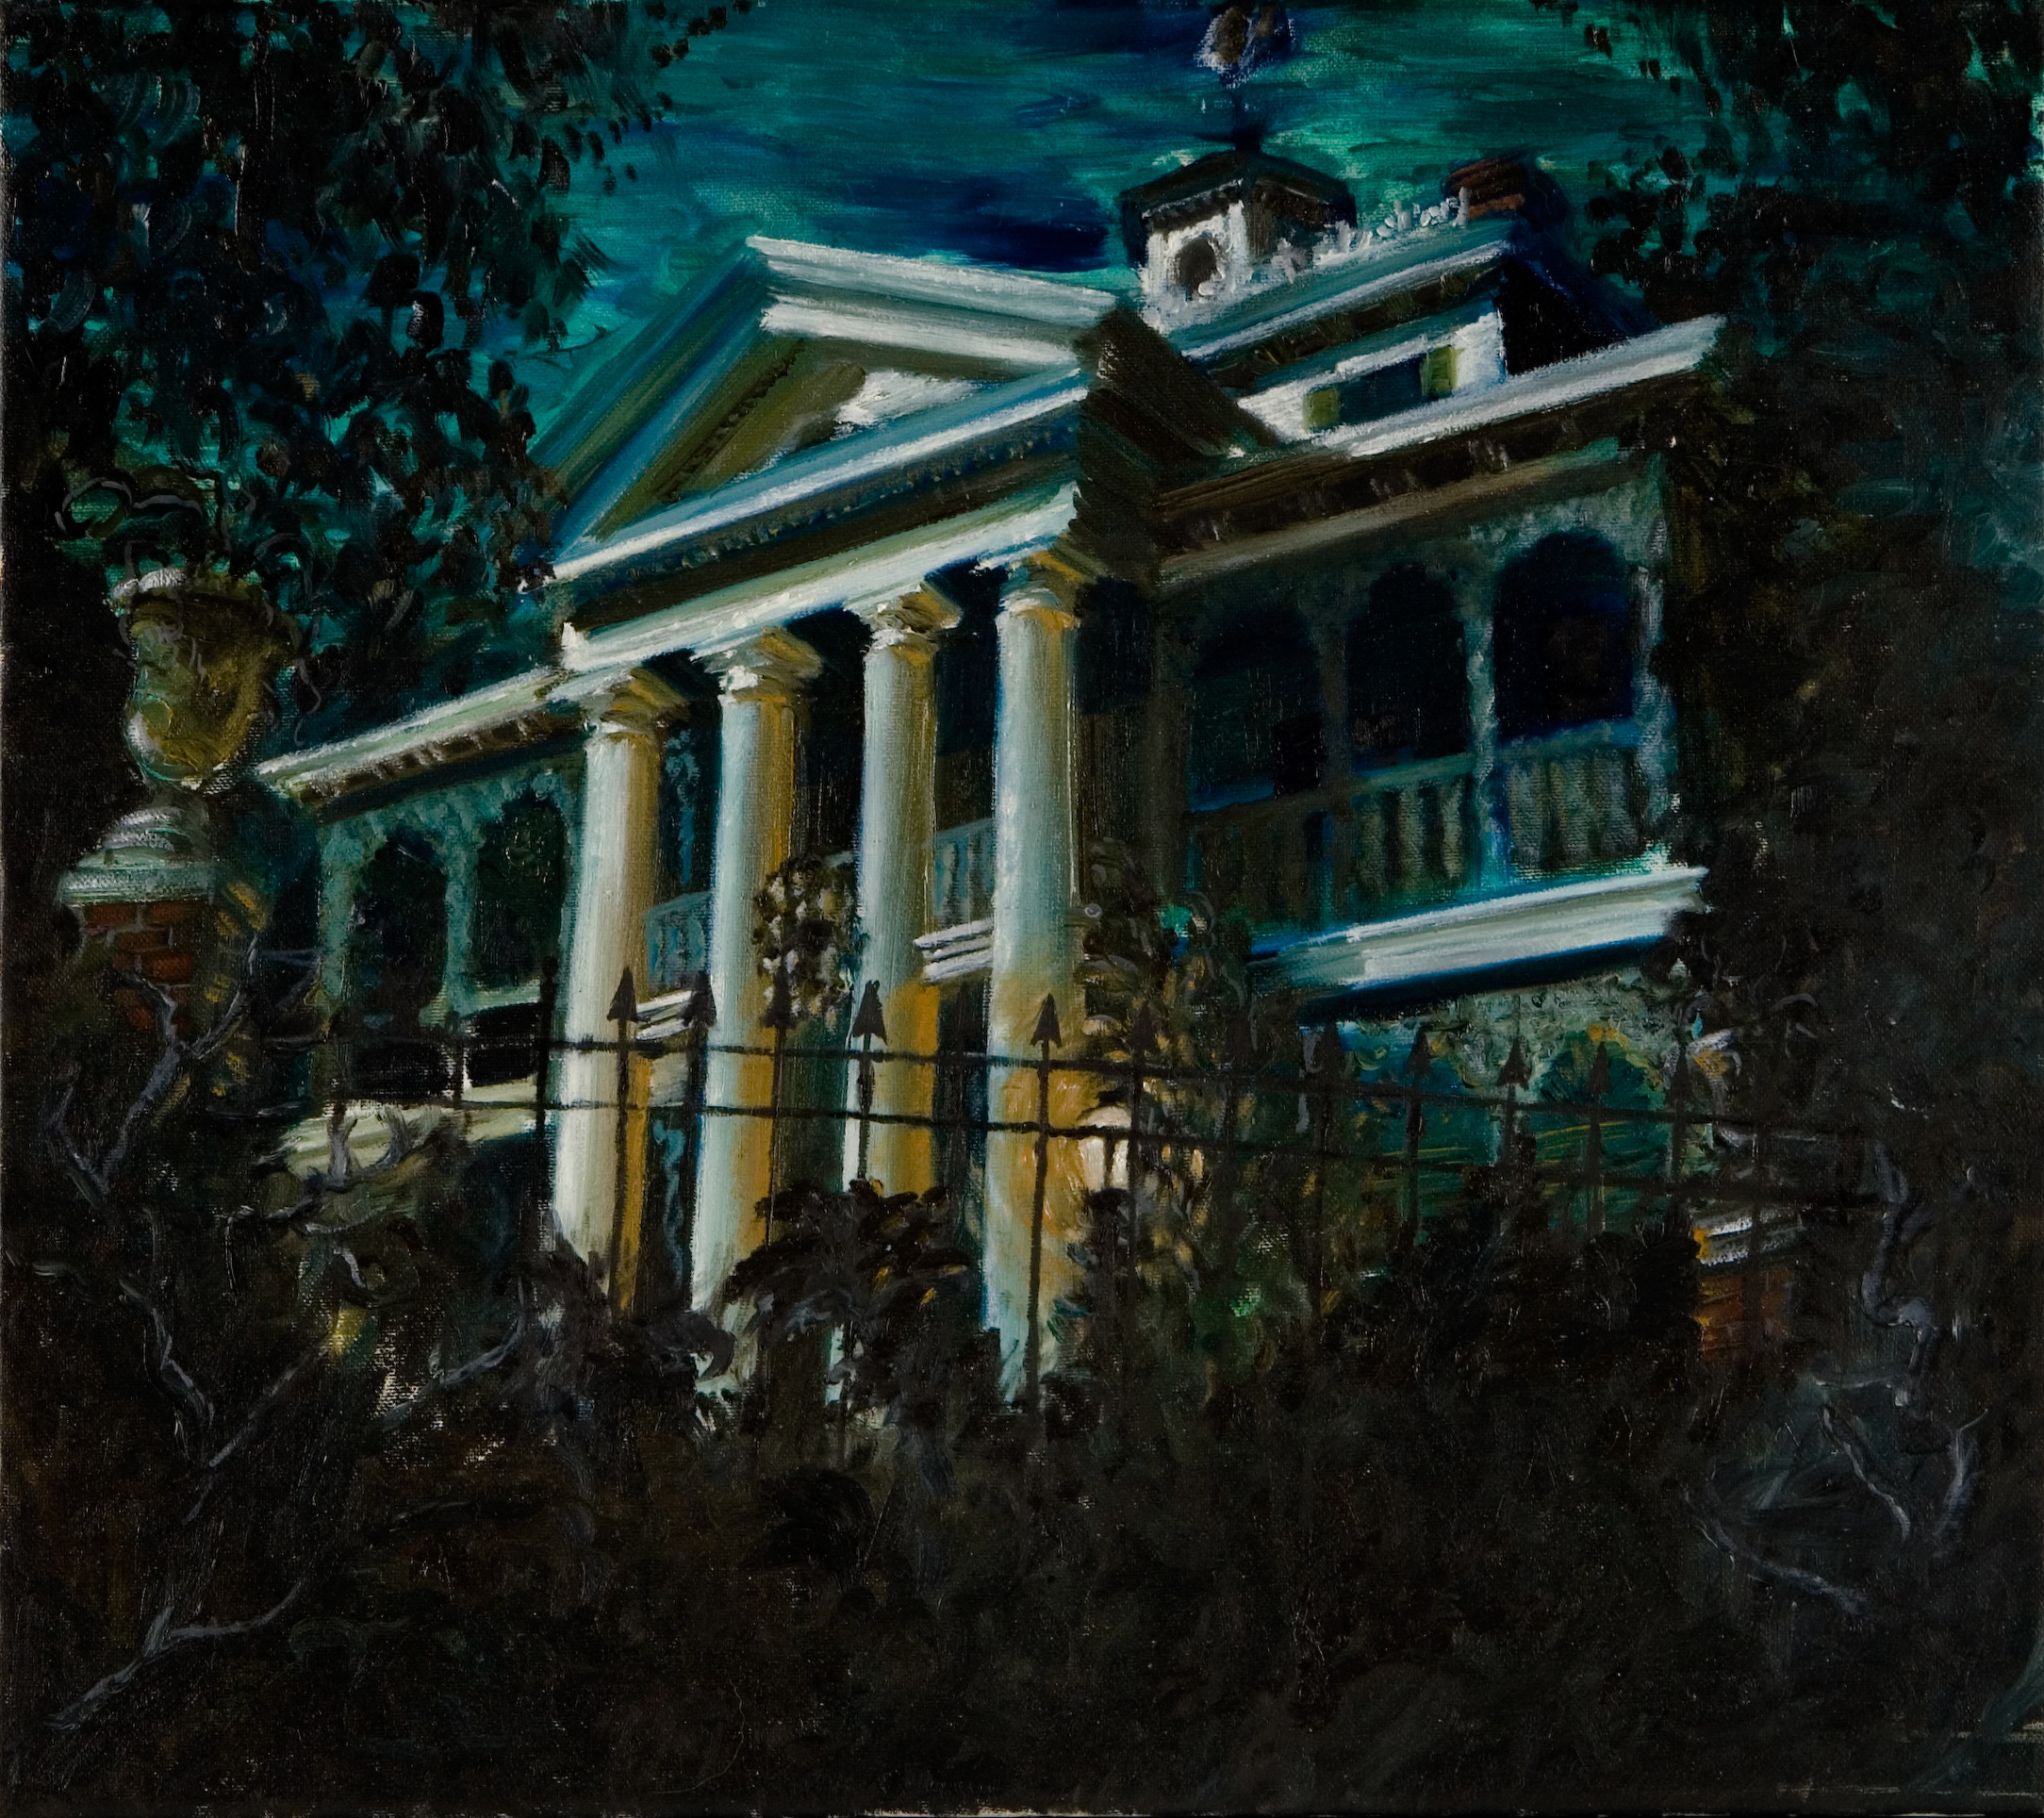 If your scared of haunted mansions, then walk away from it and never enter  inside. | other | Pinterest | Haunted mansion